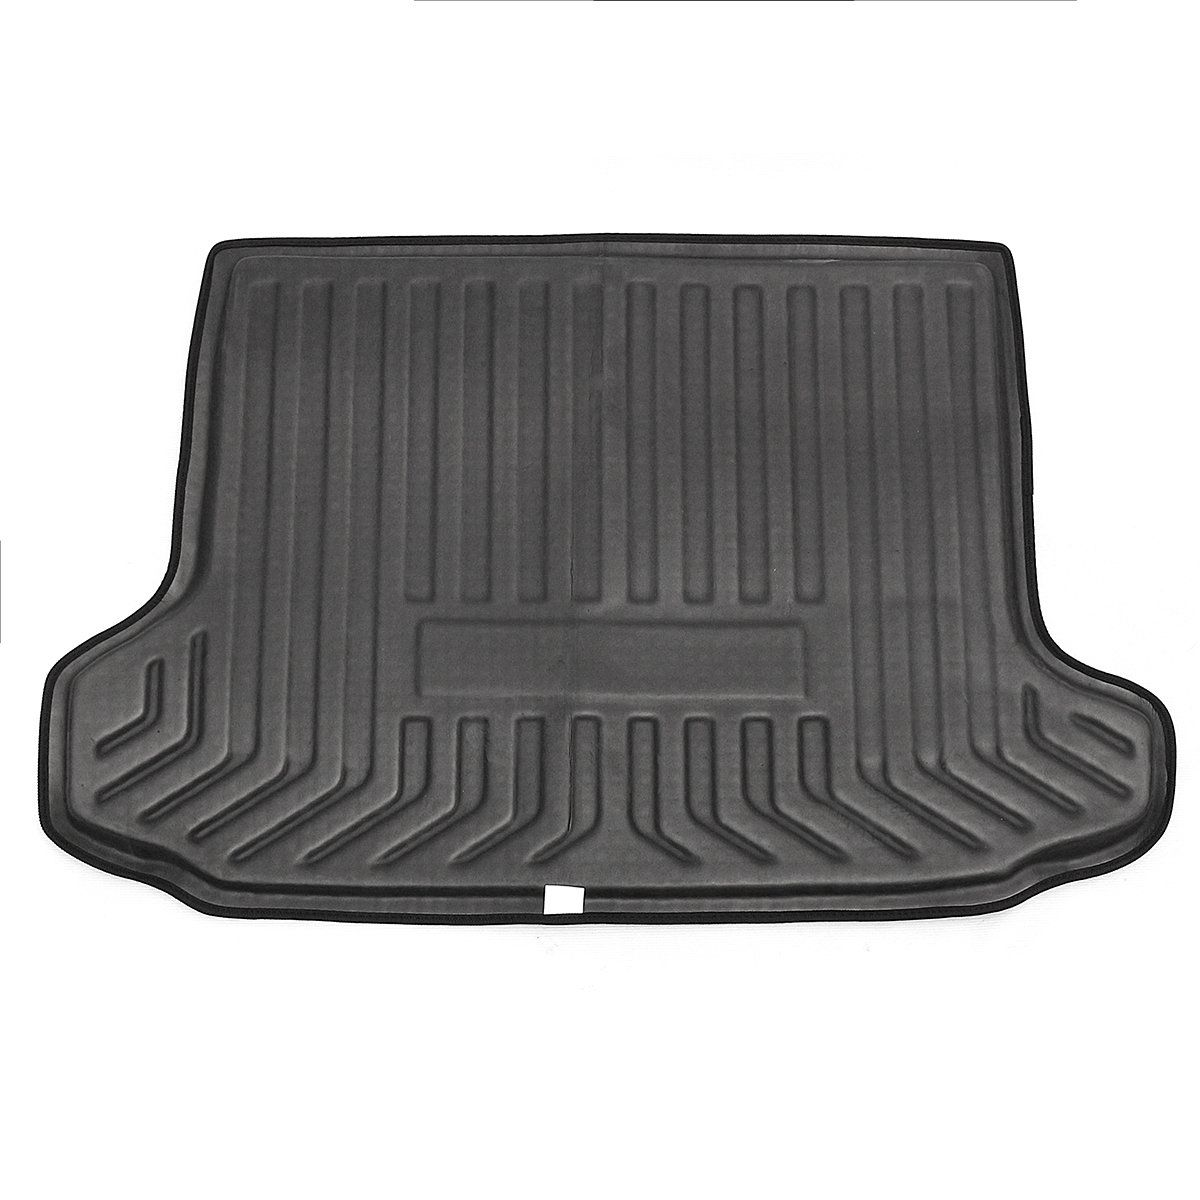 Car Cargo Liner Trunk Boot Tray Floor Mat For Gmc Terrain Chevrolet Equinox 2017 2018 In 2020 Car Cargo Liner Chevrolet Equinox Cargo Liner